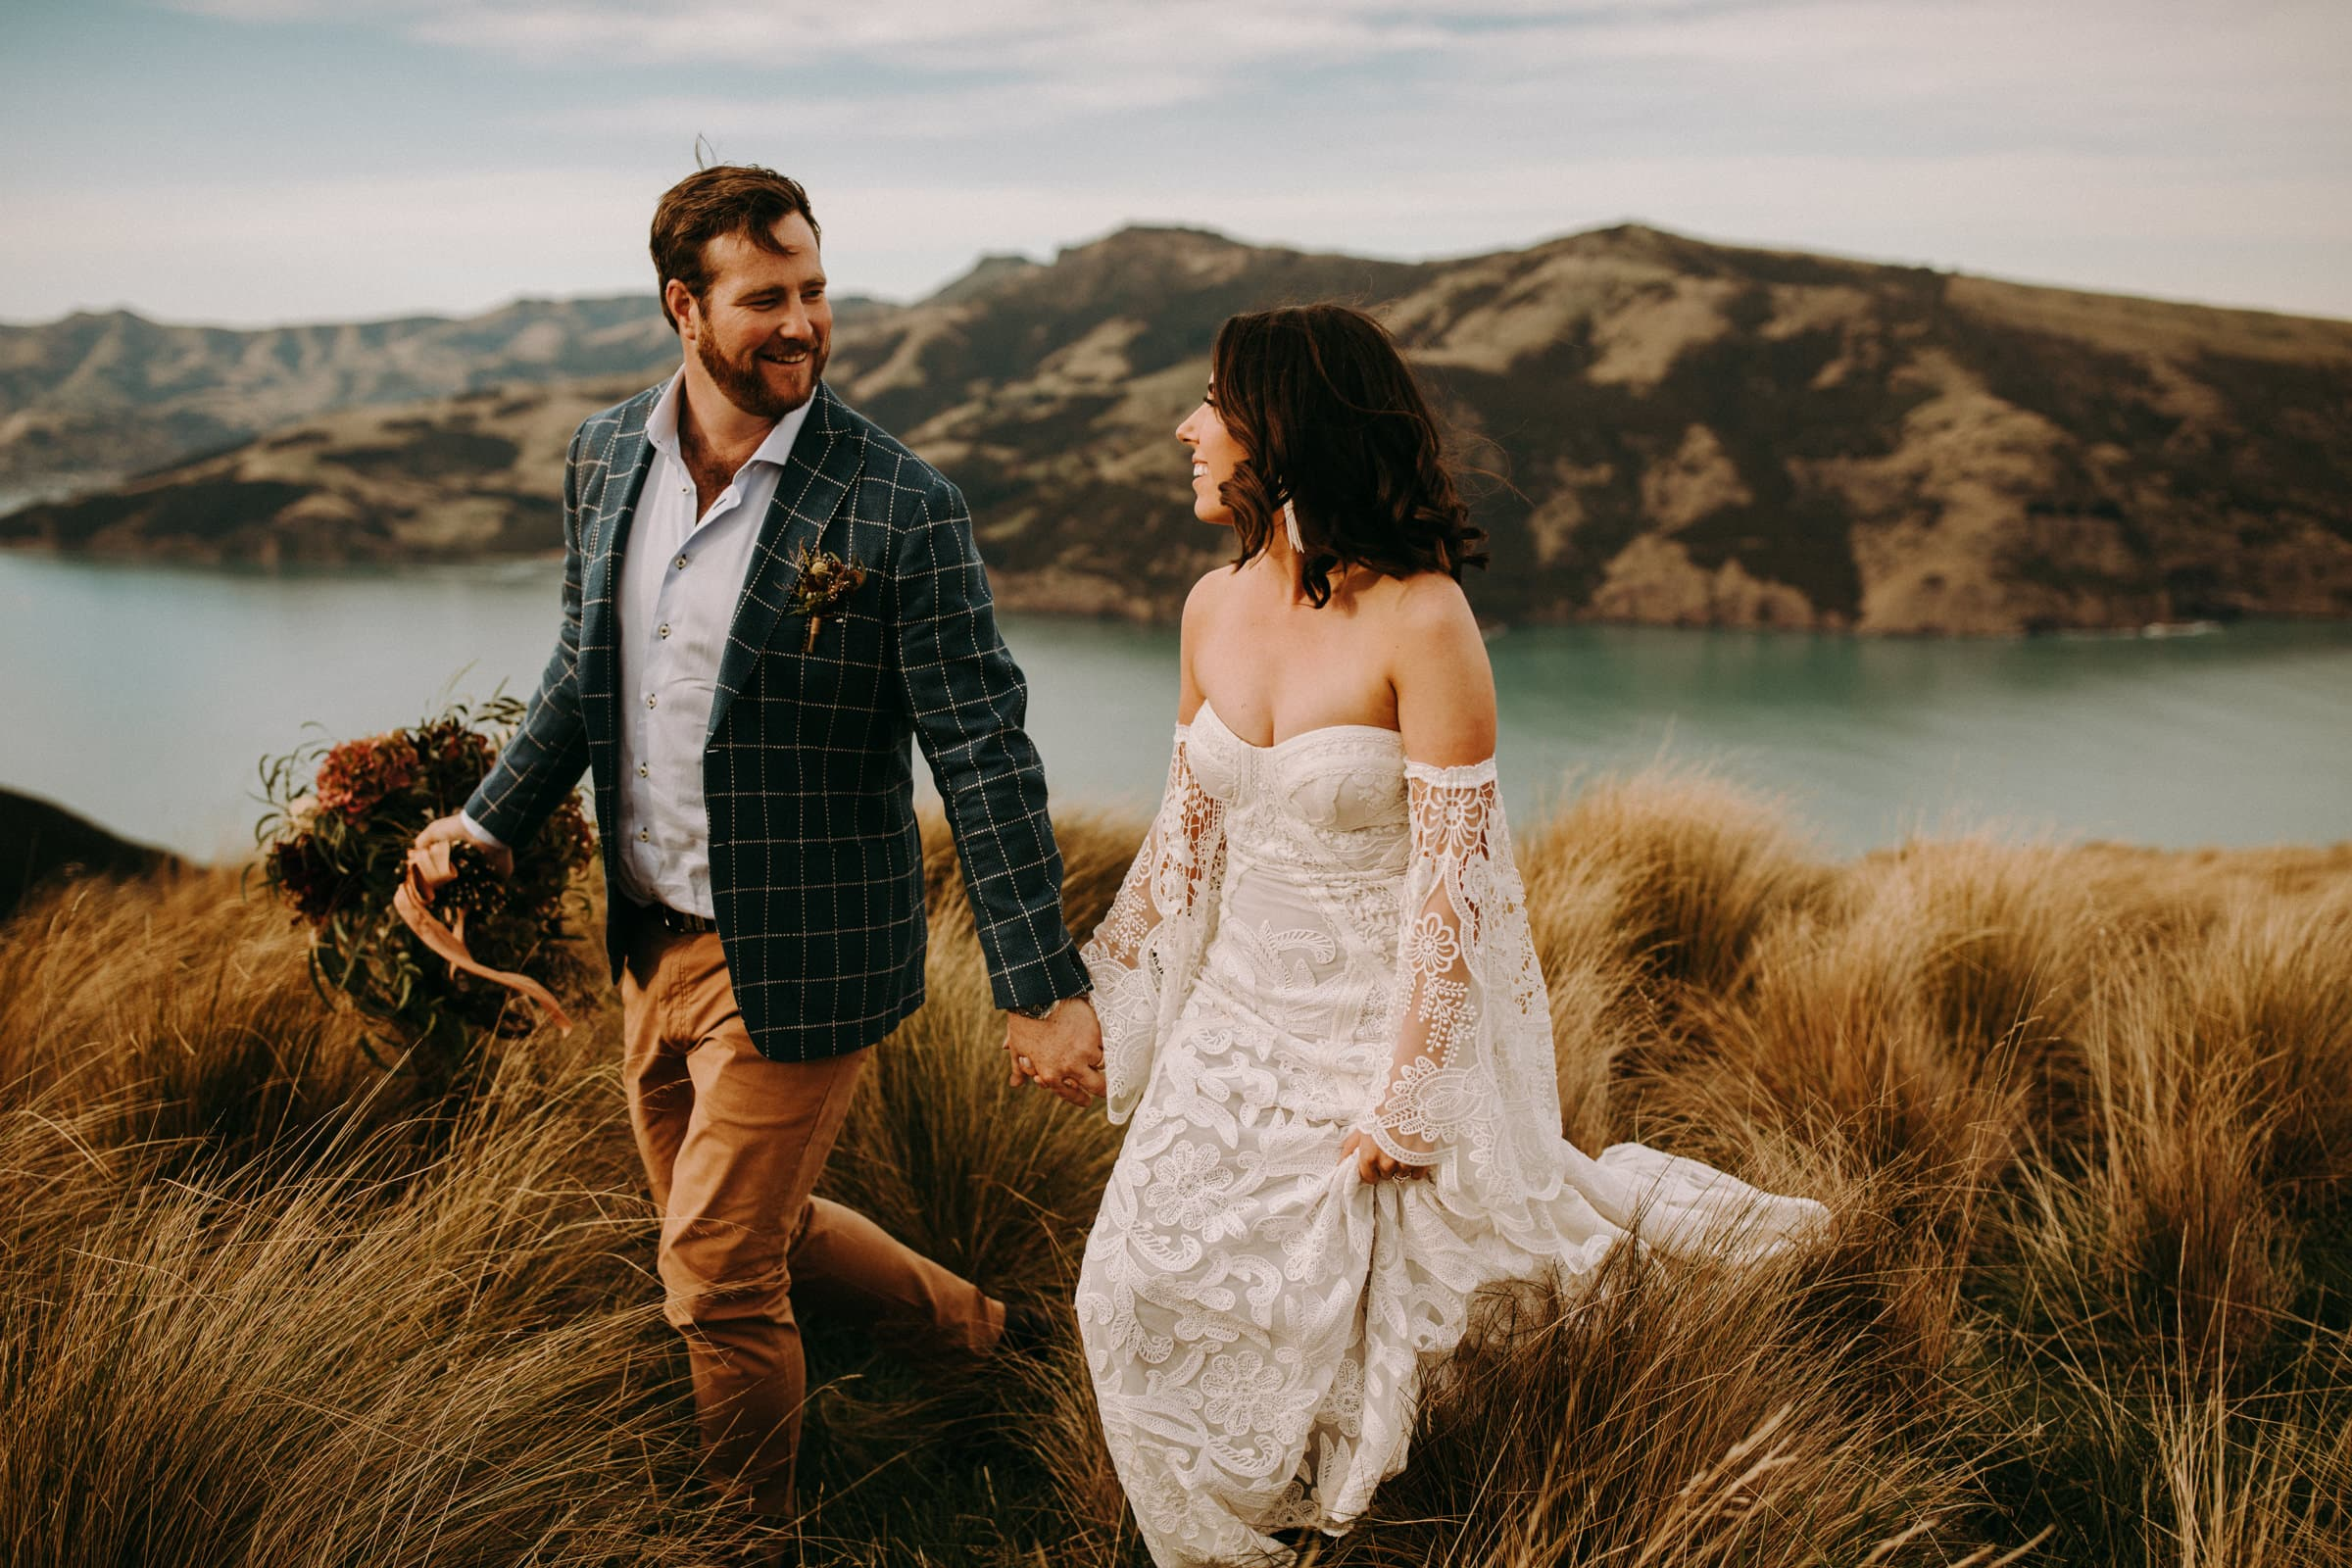 A wedding couple is walking in a meadow and is holding hands.